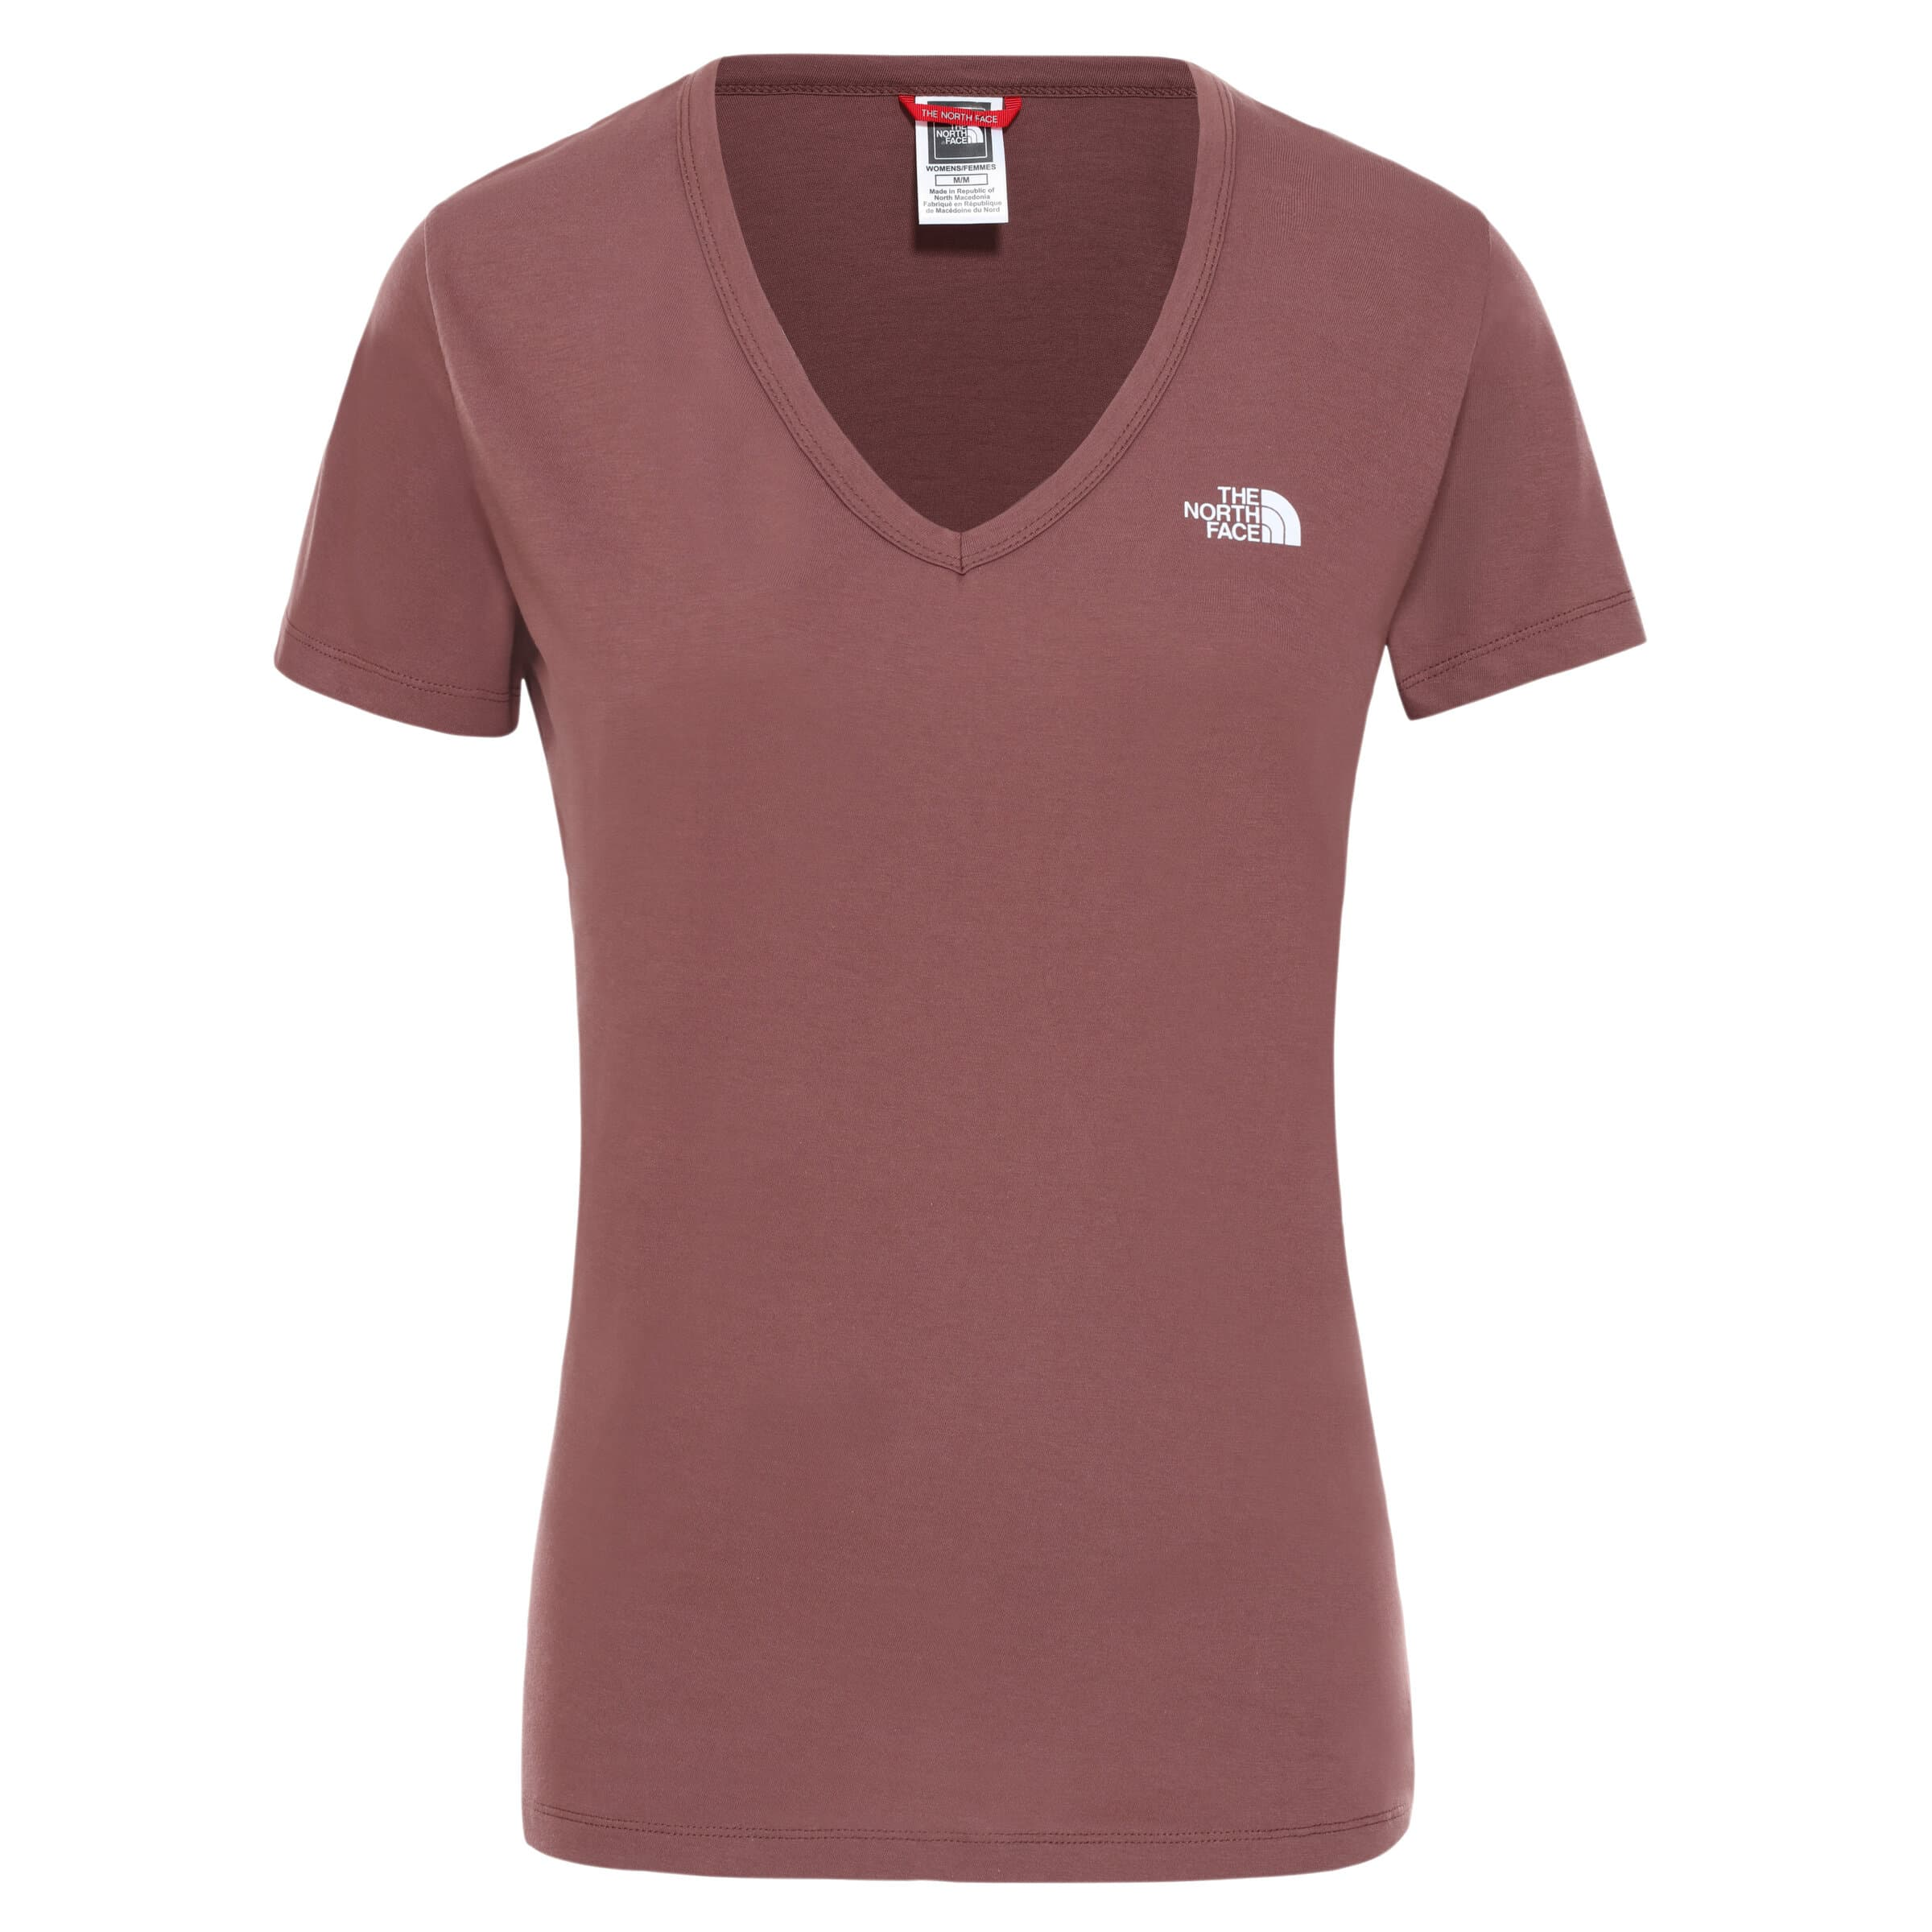 The North Face Simple Dome T-Shirt pour femmes